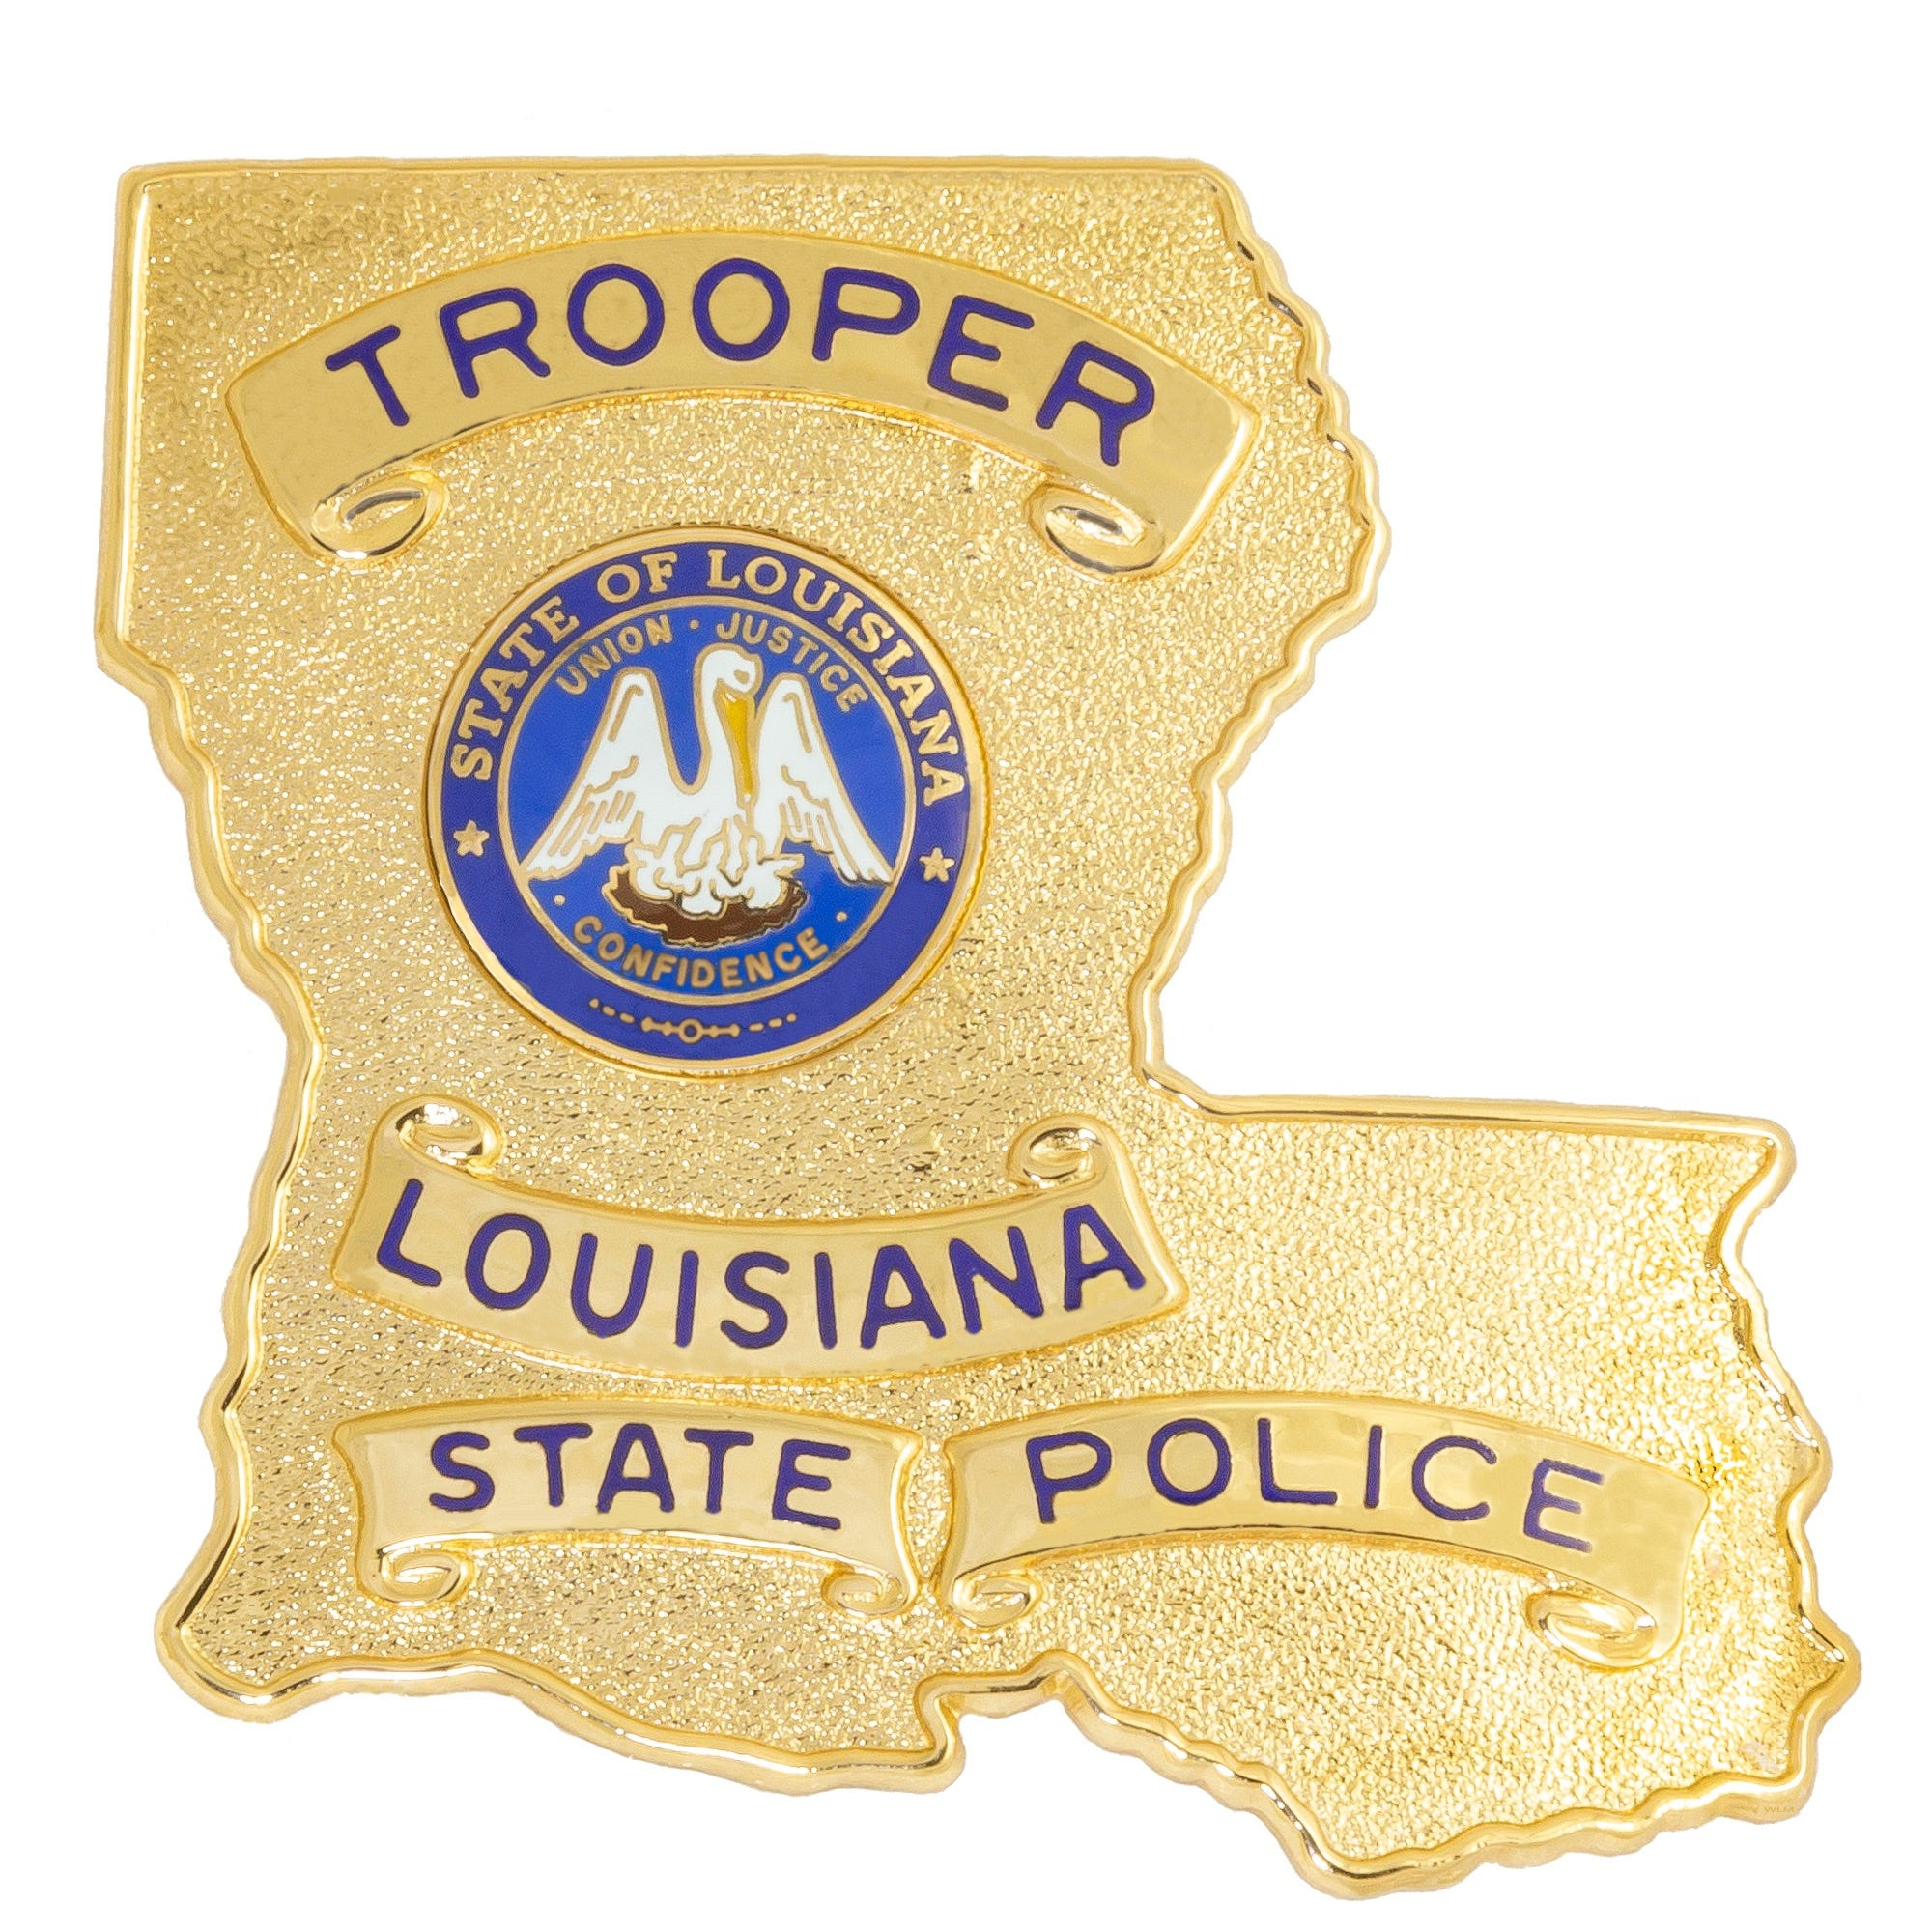 Unrestrained driver killed in Franklin Parish crash